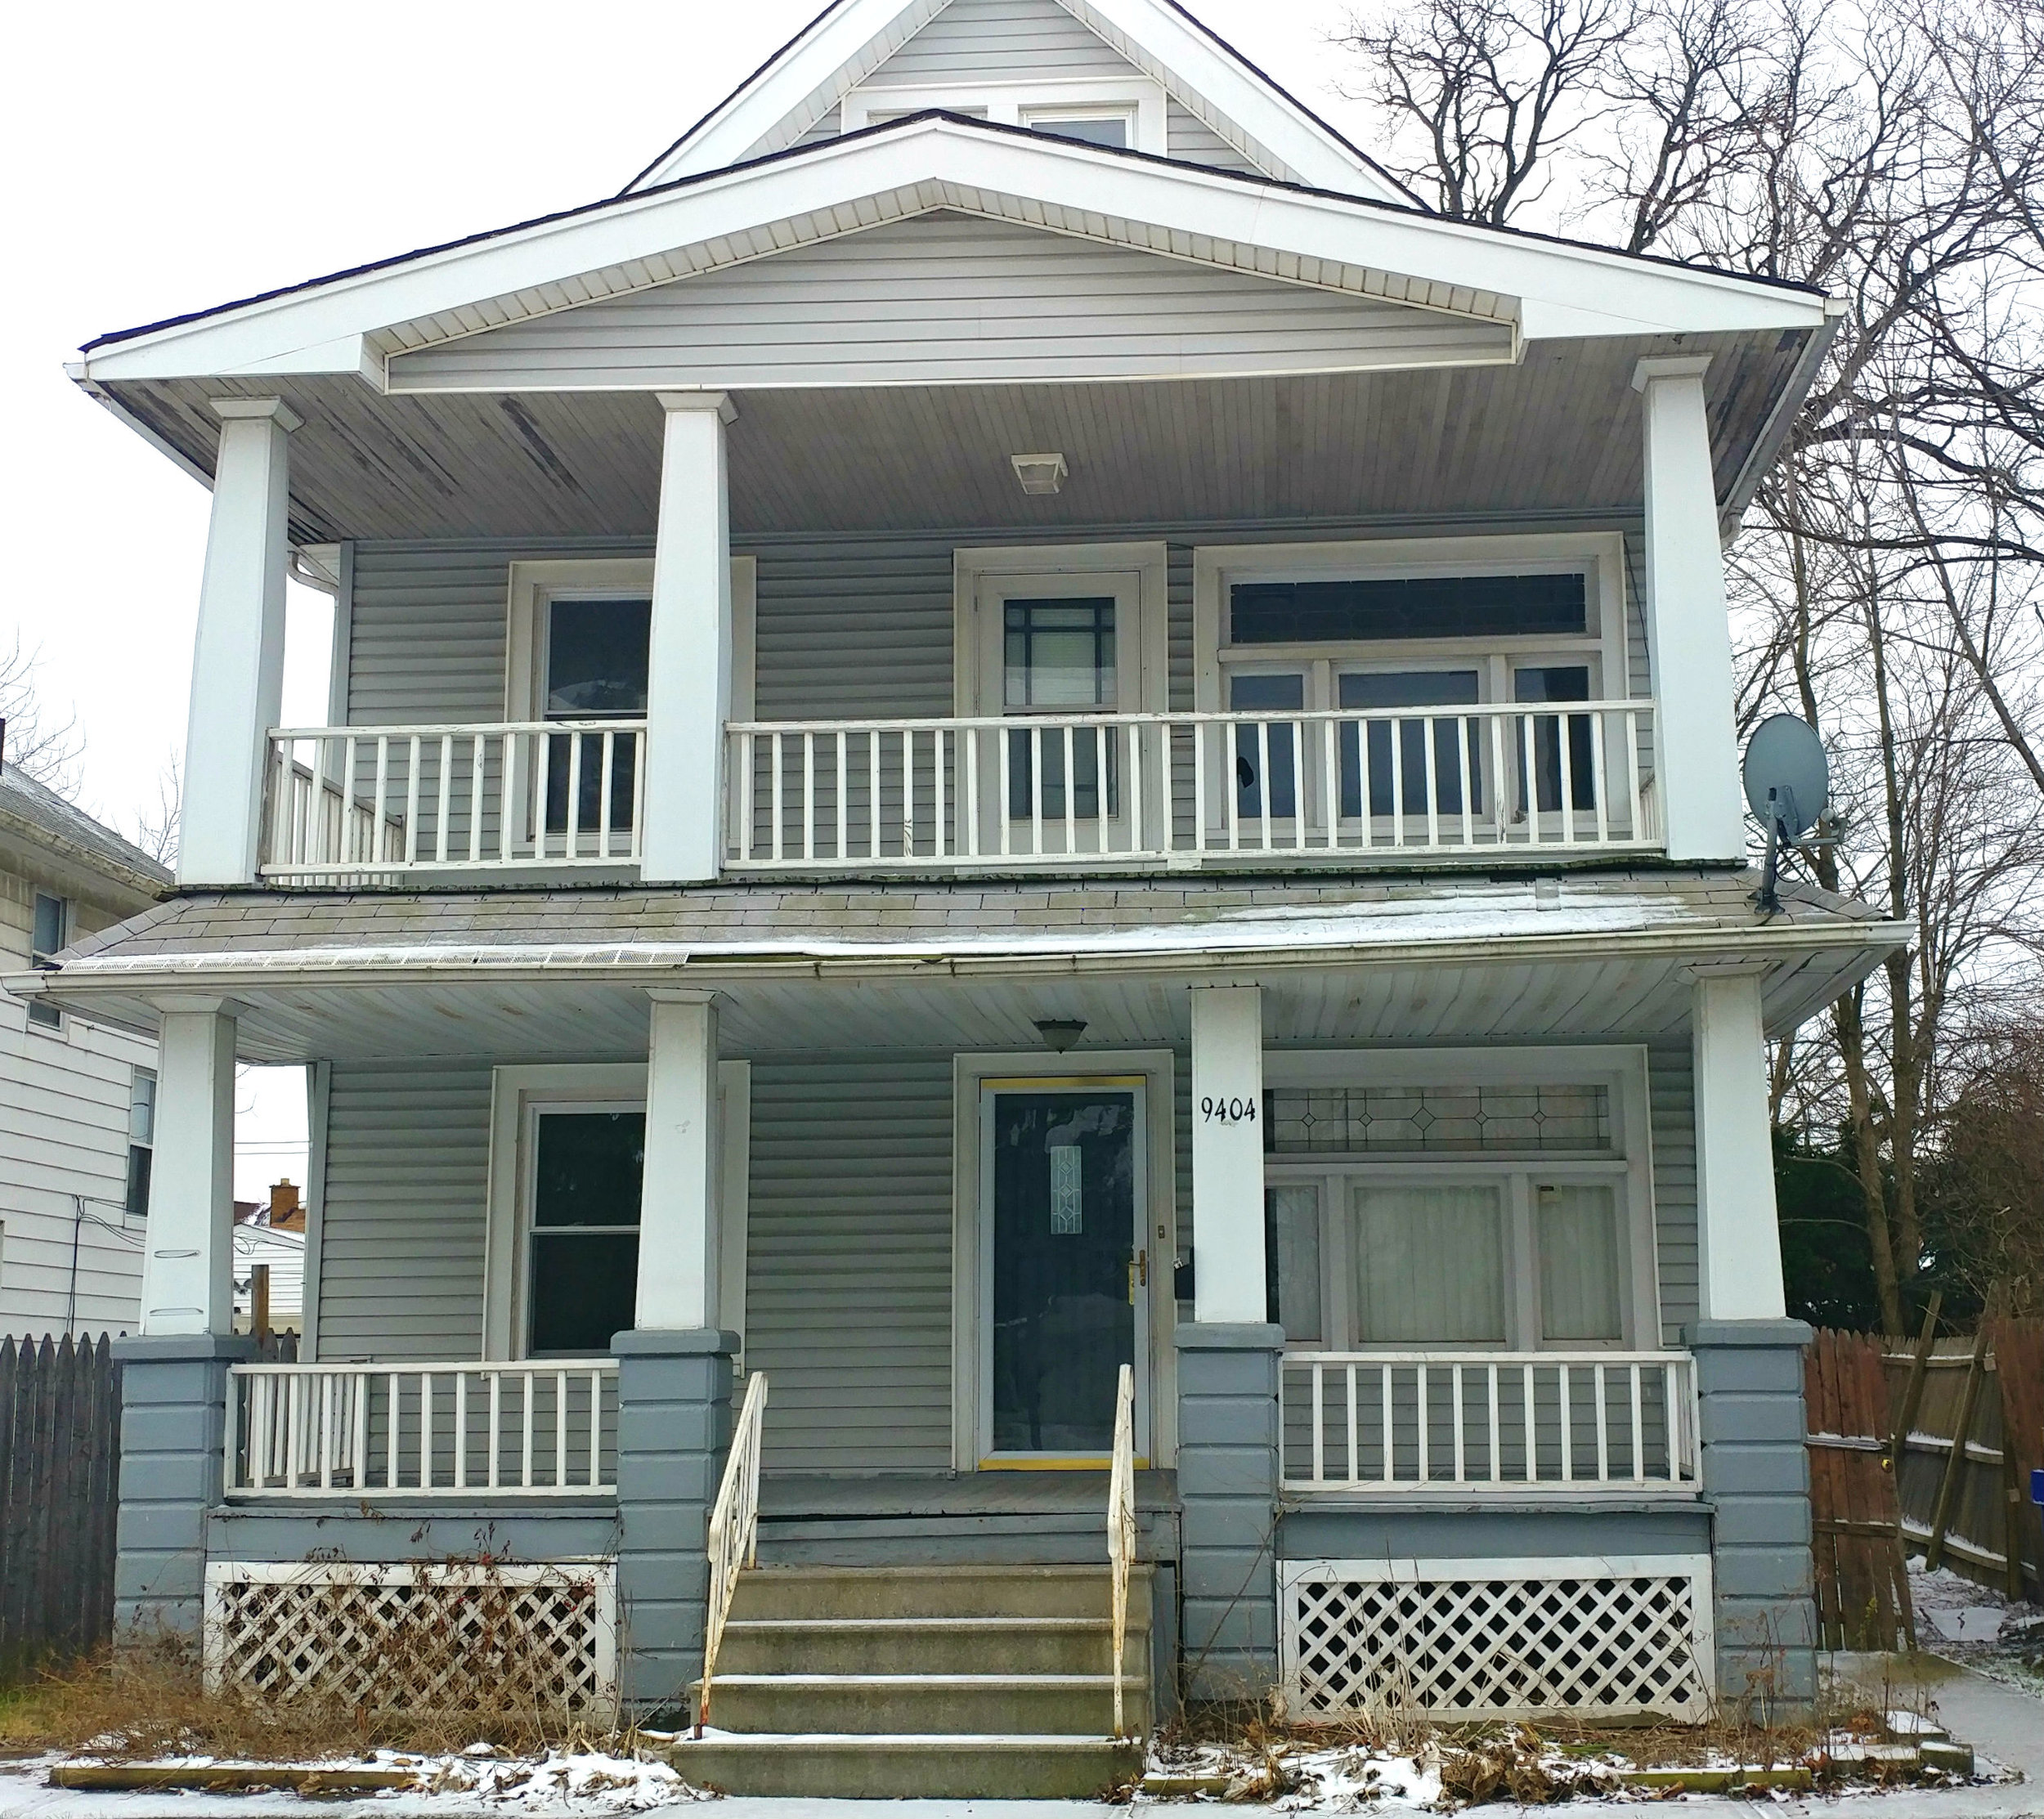 9404 Cardwell Ave., Cleveland | 4 bed 2 bath | 1,852 Sq. Ft. | $44,500